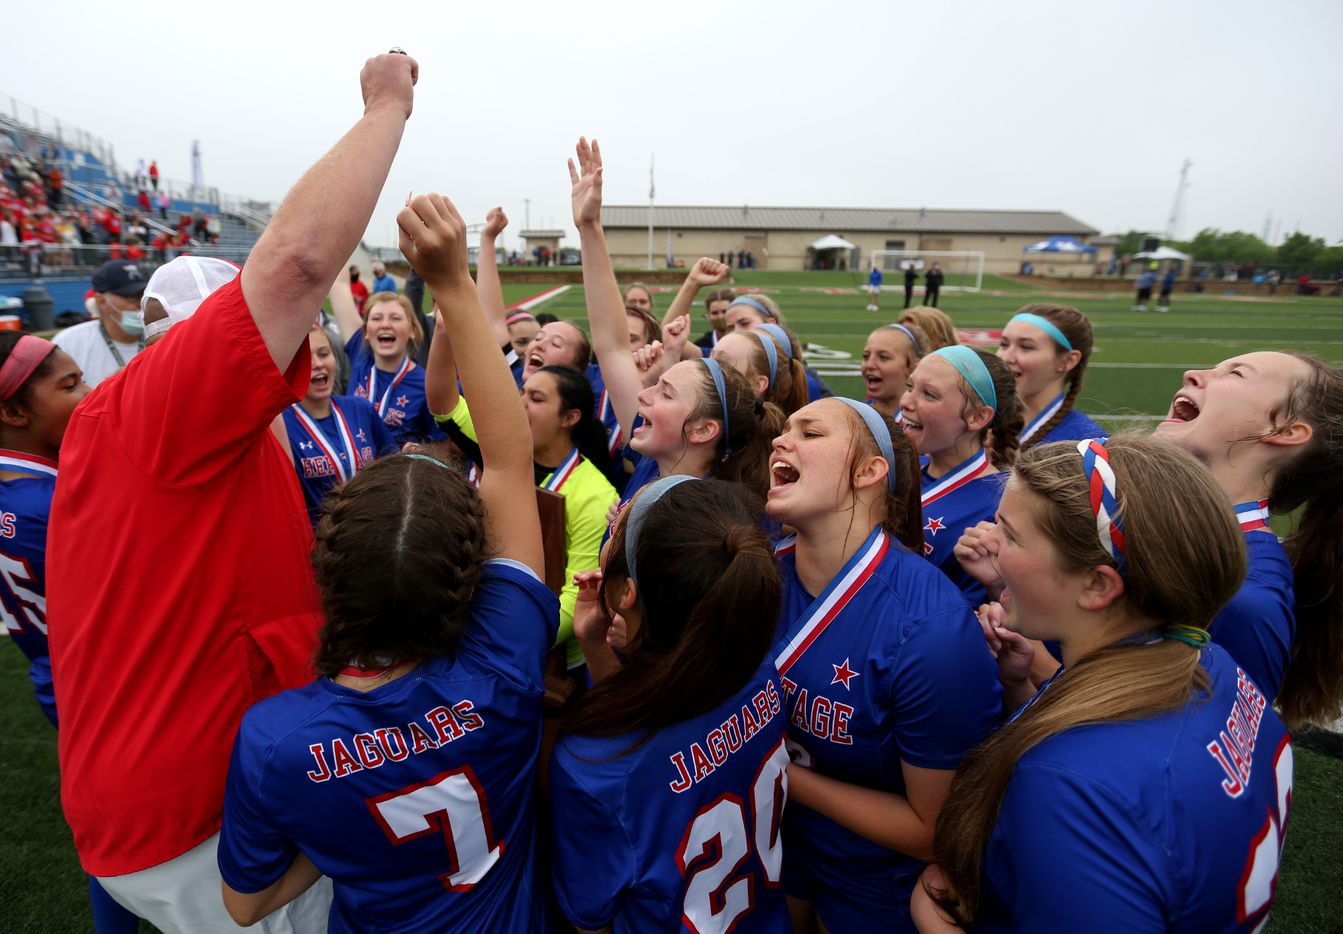 Midlothian Heritage head coach Gerald Slovacek cheers with his players at their win over Calallen at their UIL 4A girls State championship soccer game at Birkelbach Field on April 16, 2021 in Georgetown, Texas.